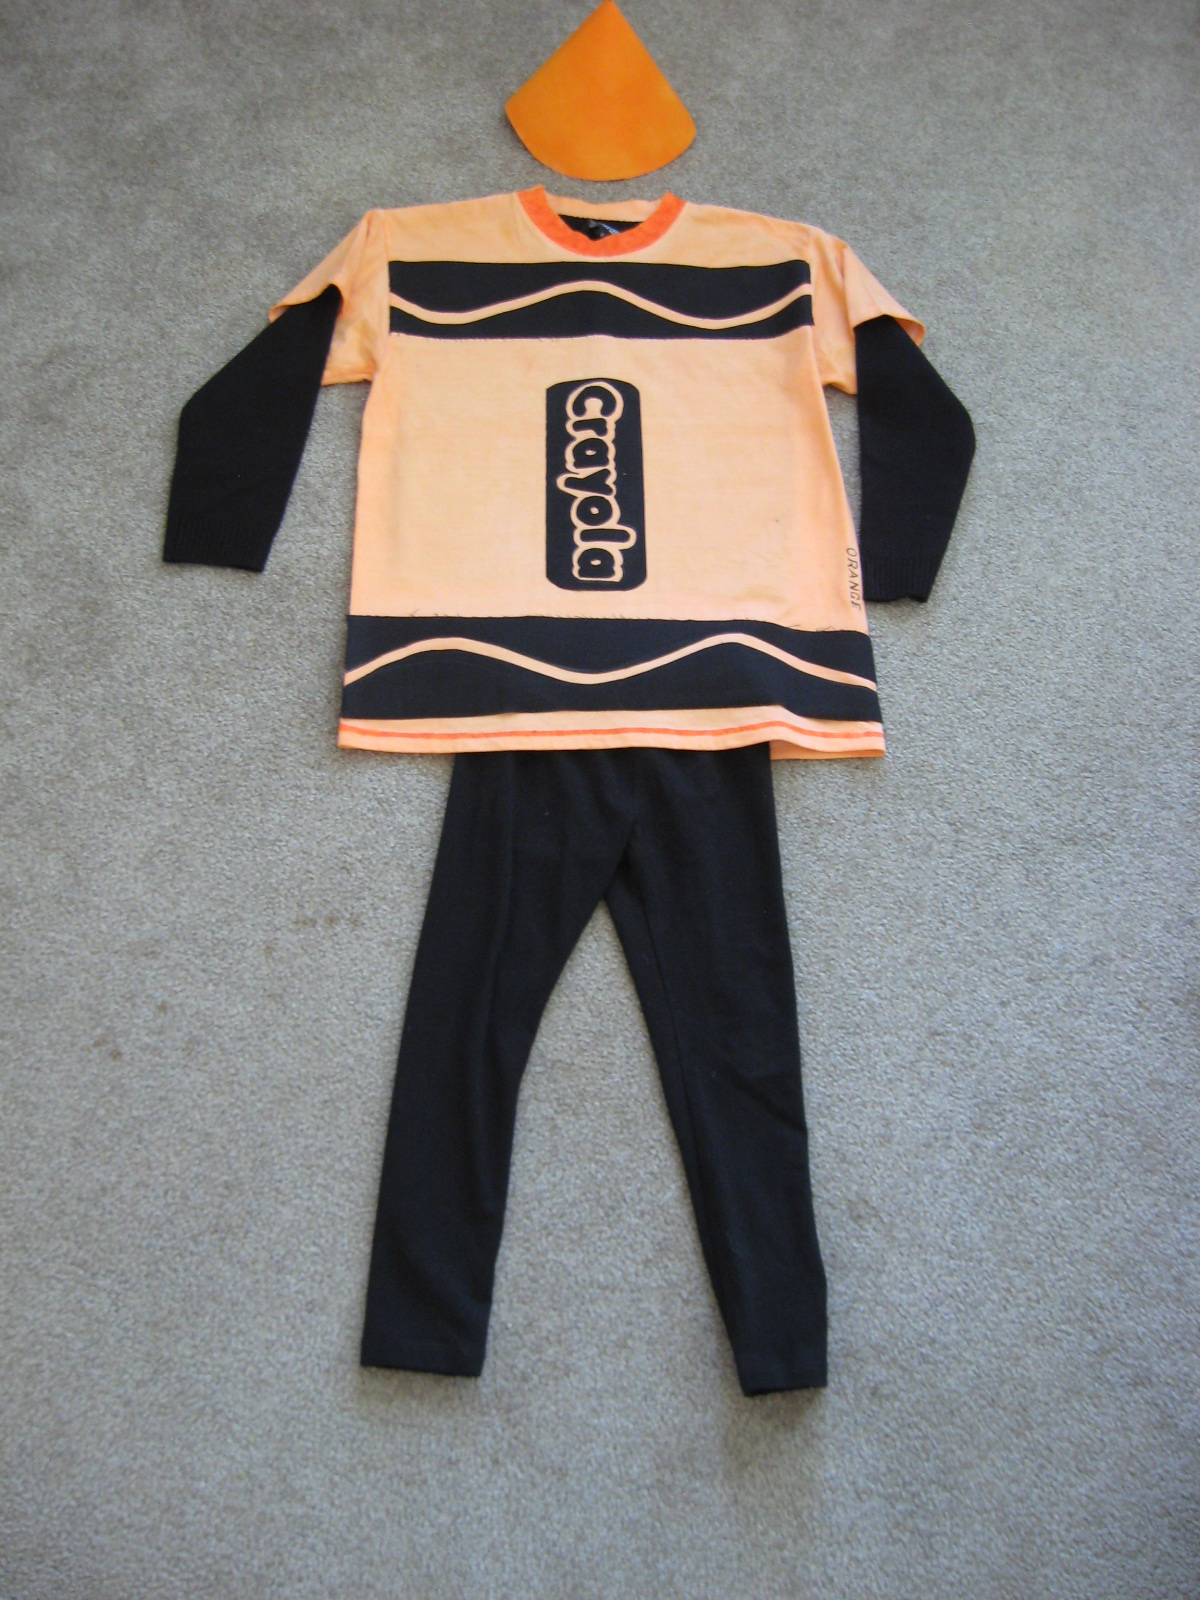 bc5b1471 Diy Crayon Halloween Costumes ✓ All About Costumes